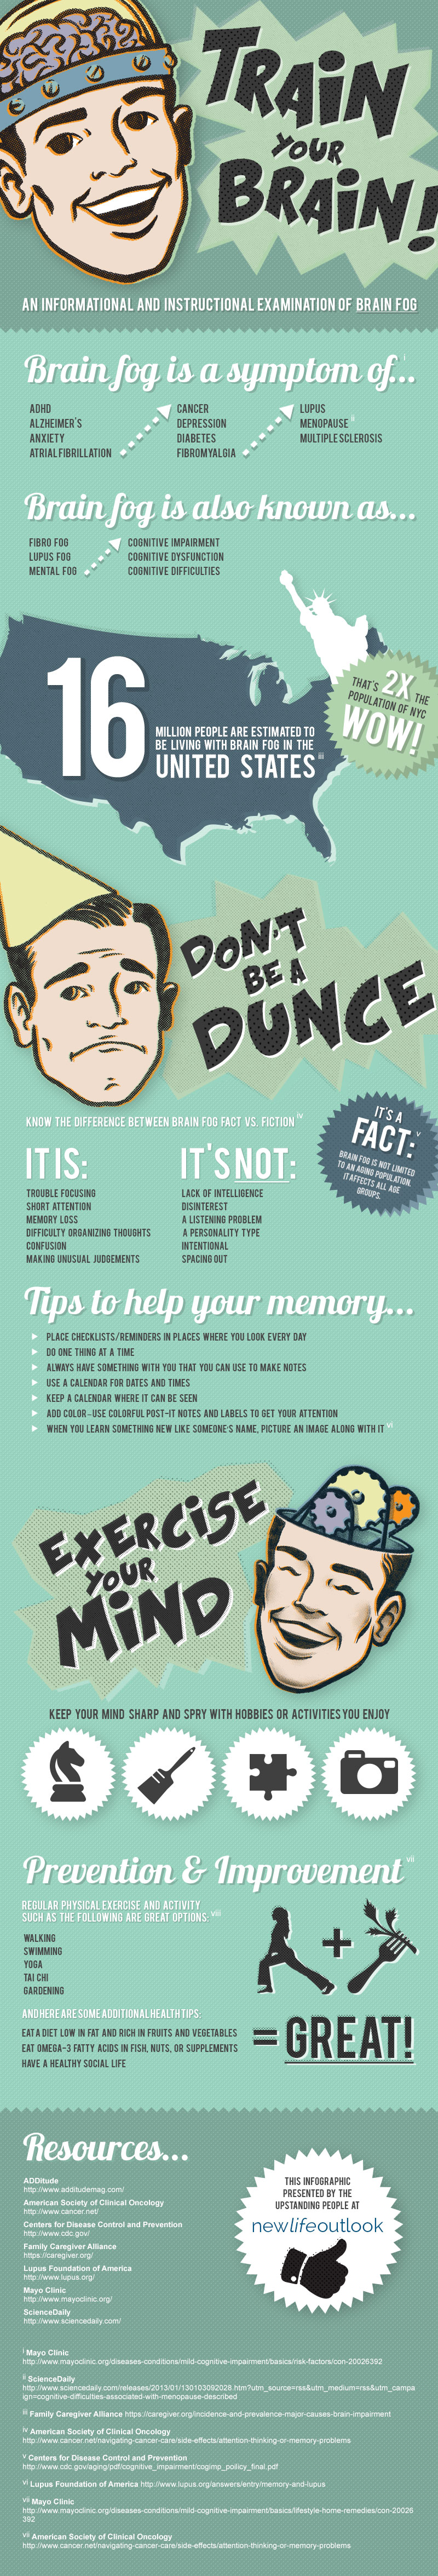 Ways to improve memory for studying photo 3